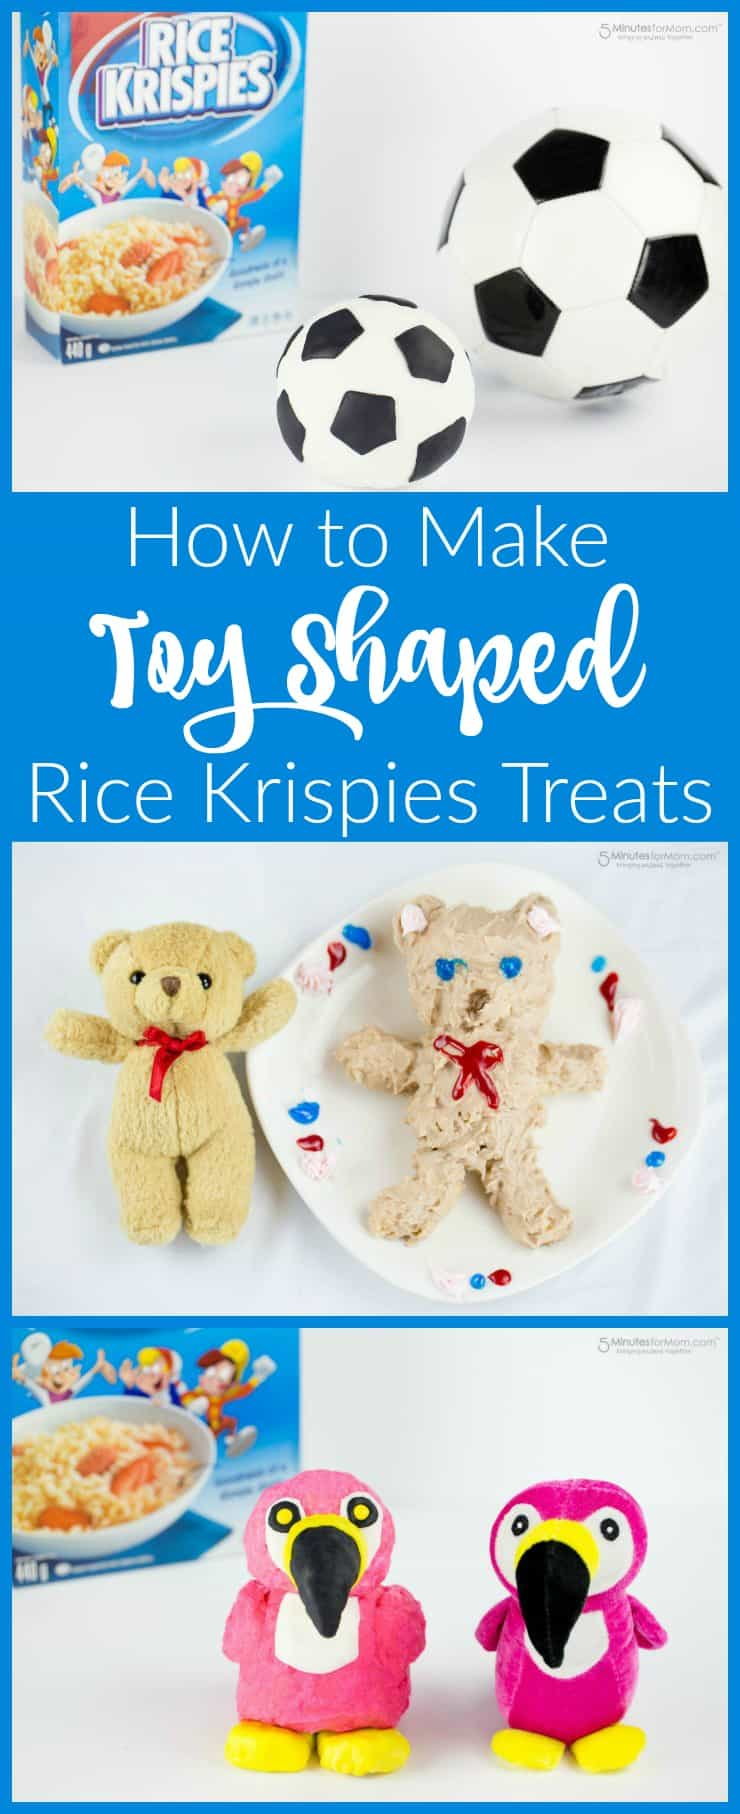 How to make toy shaped Rice Krispies Treats